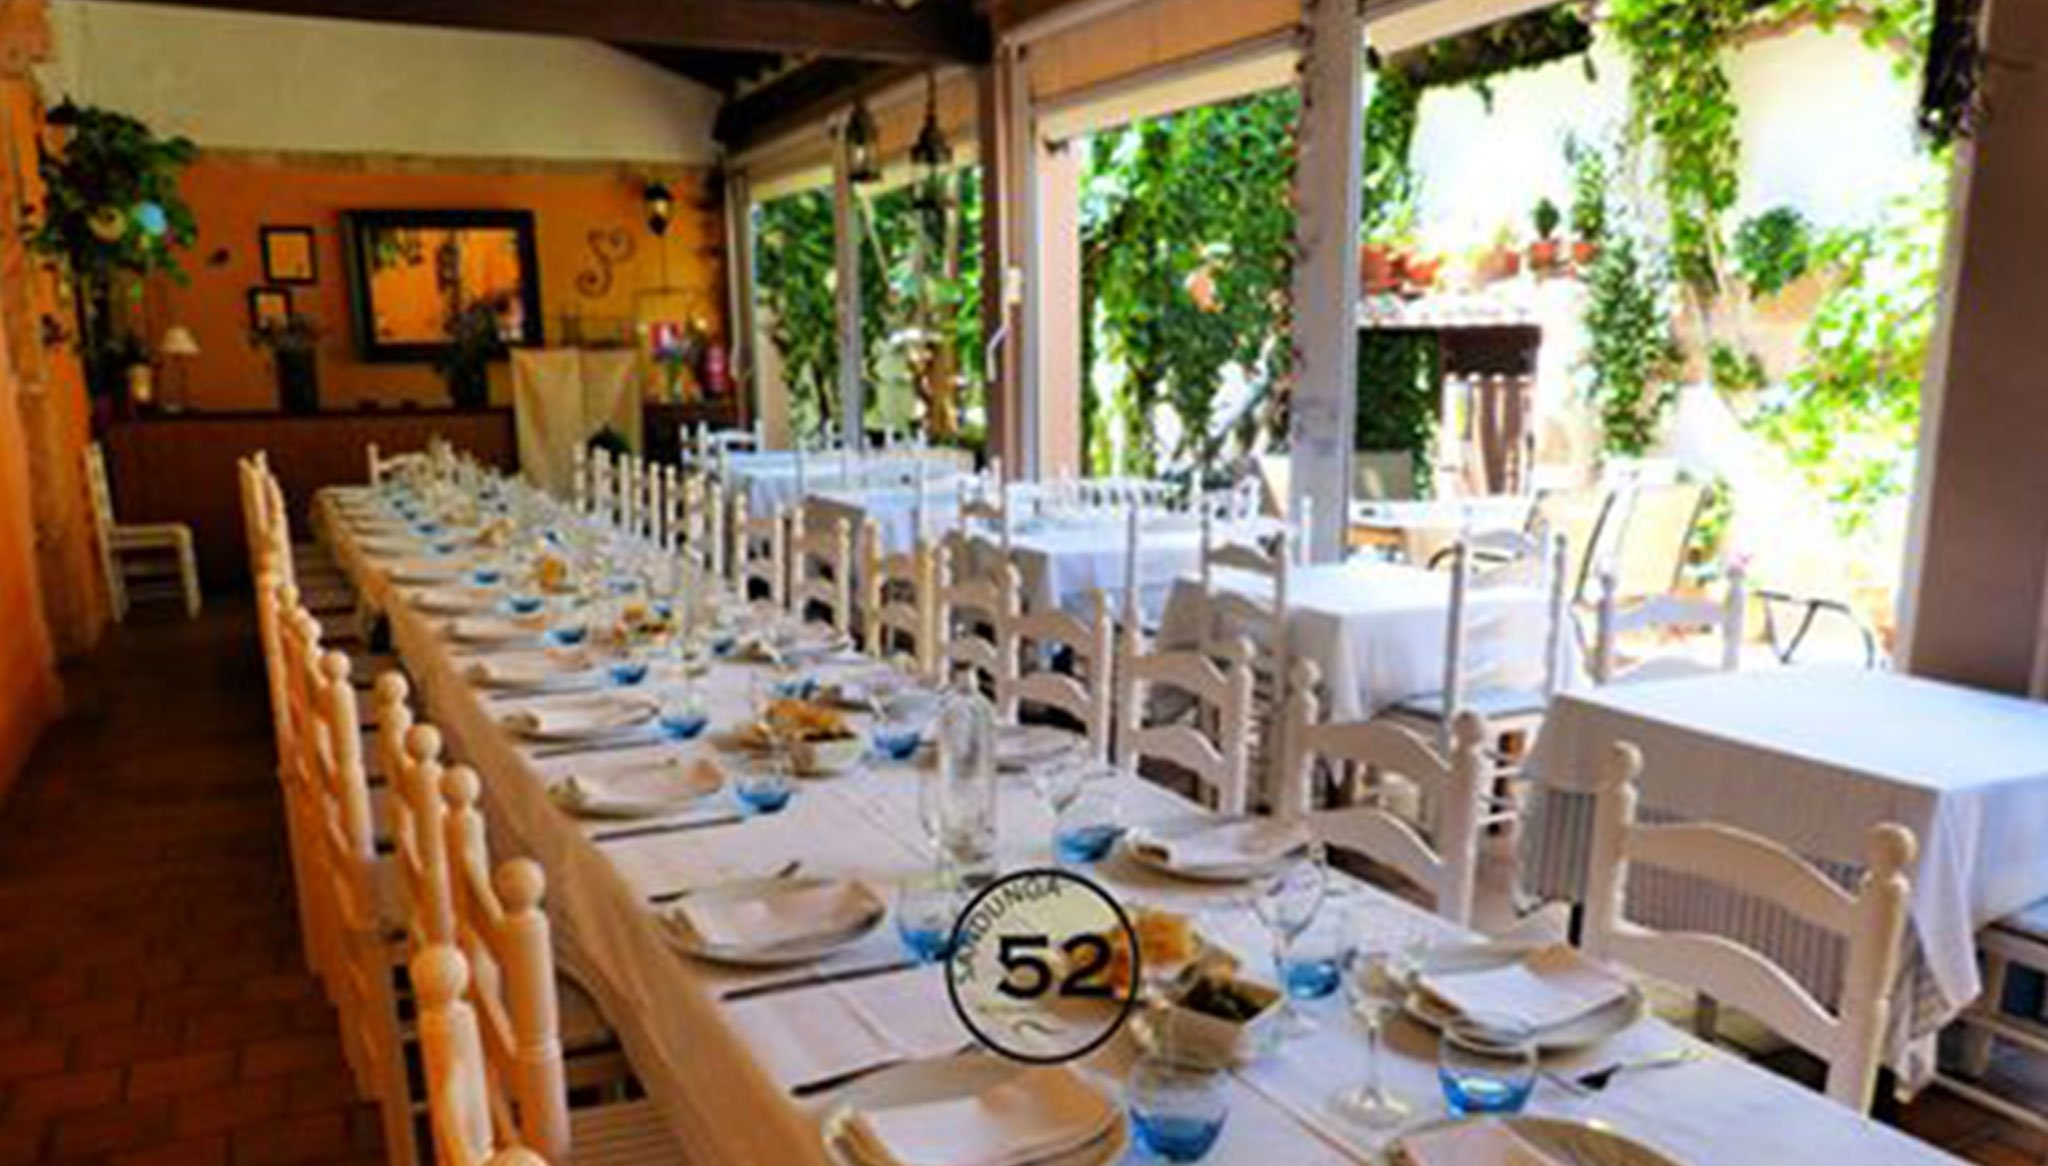 View of the Sandunga 52 dining room prepared for a celebration